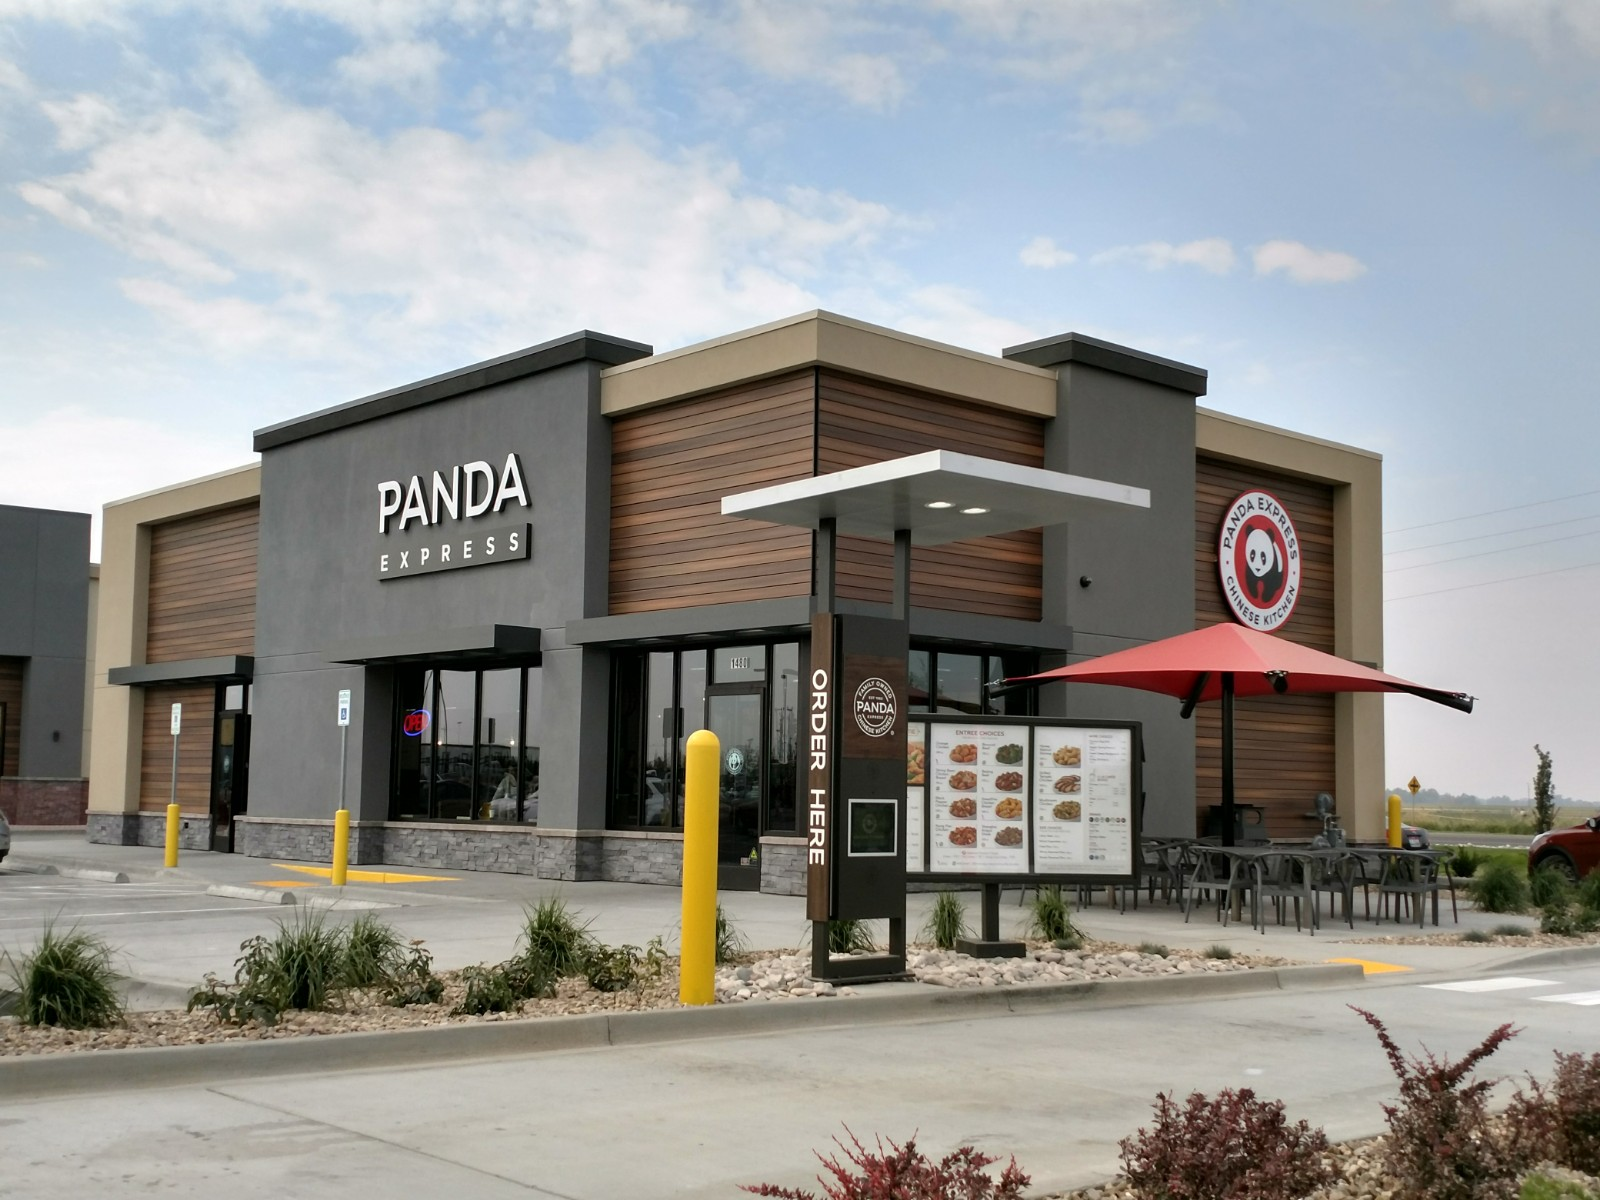 Rexburg Panda Express grand opening is September 15. Great place to eat during seven-week break